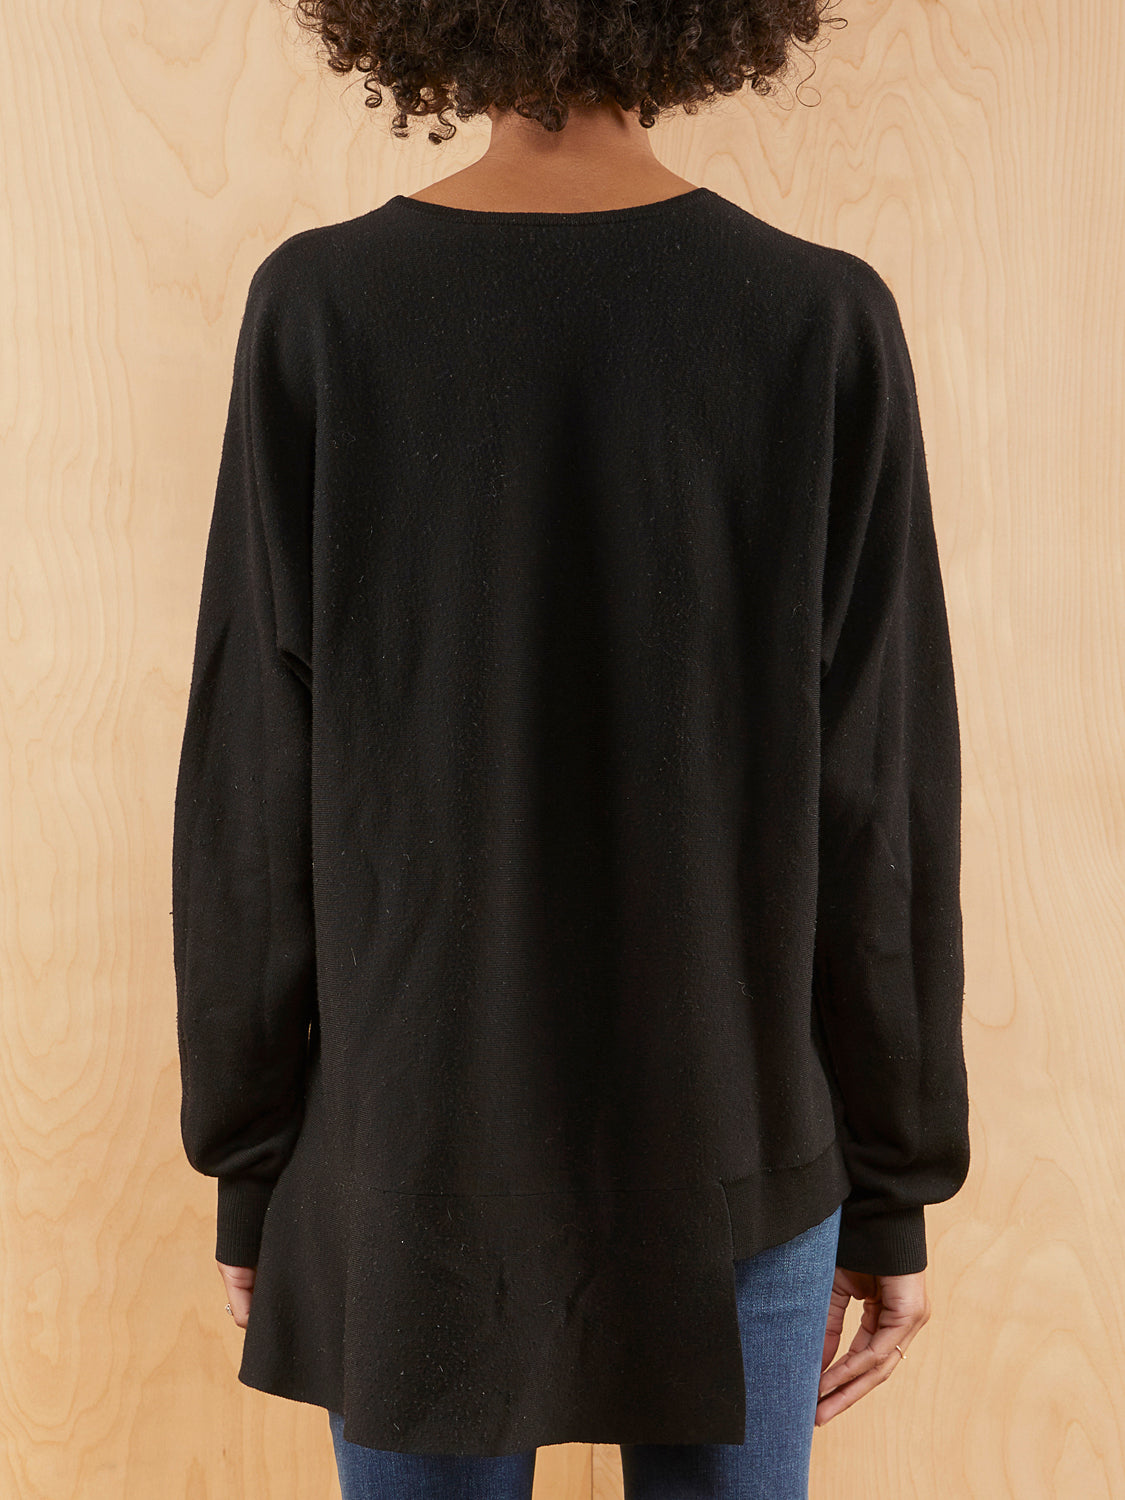 Tibi Black Assymetic Sweater